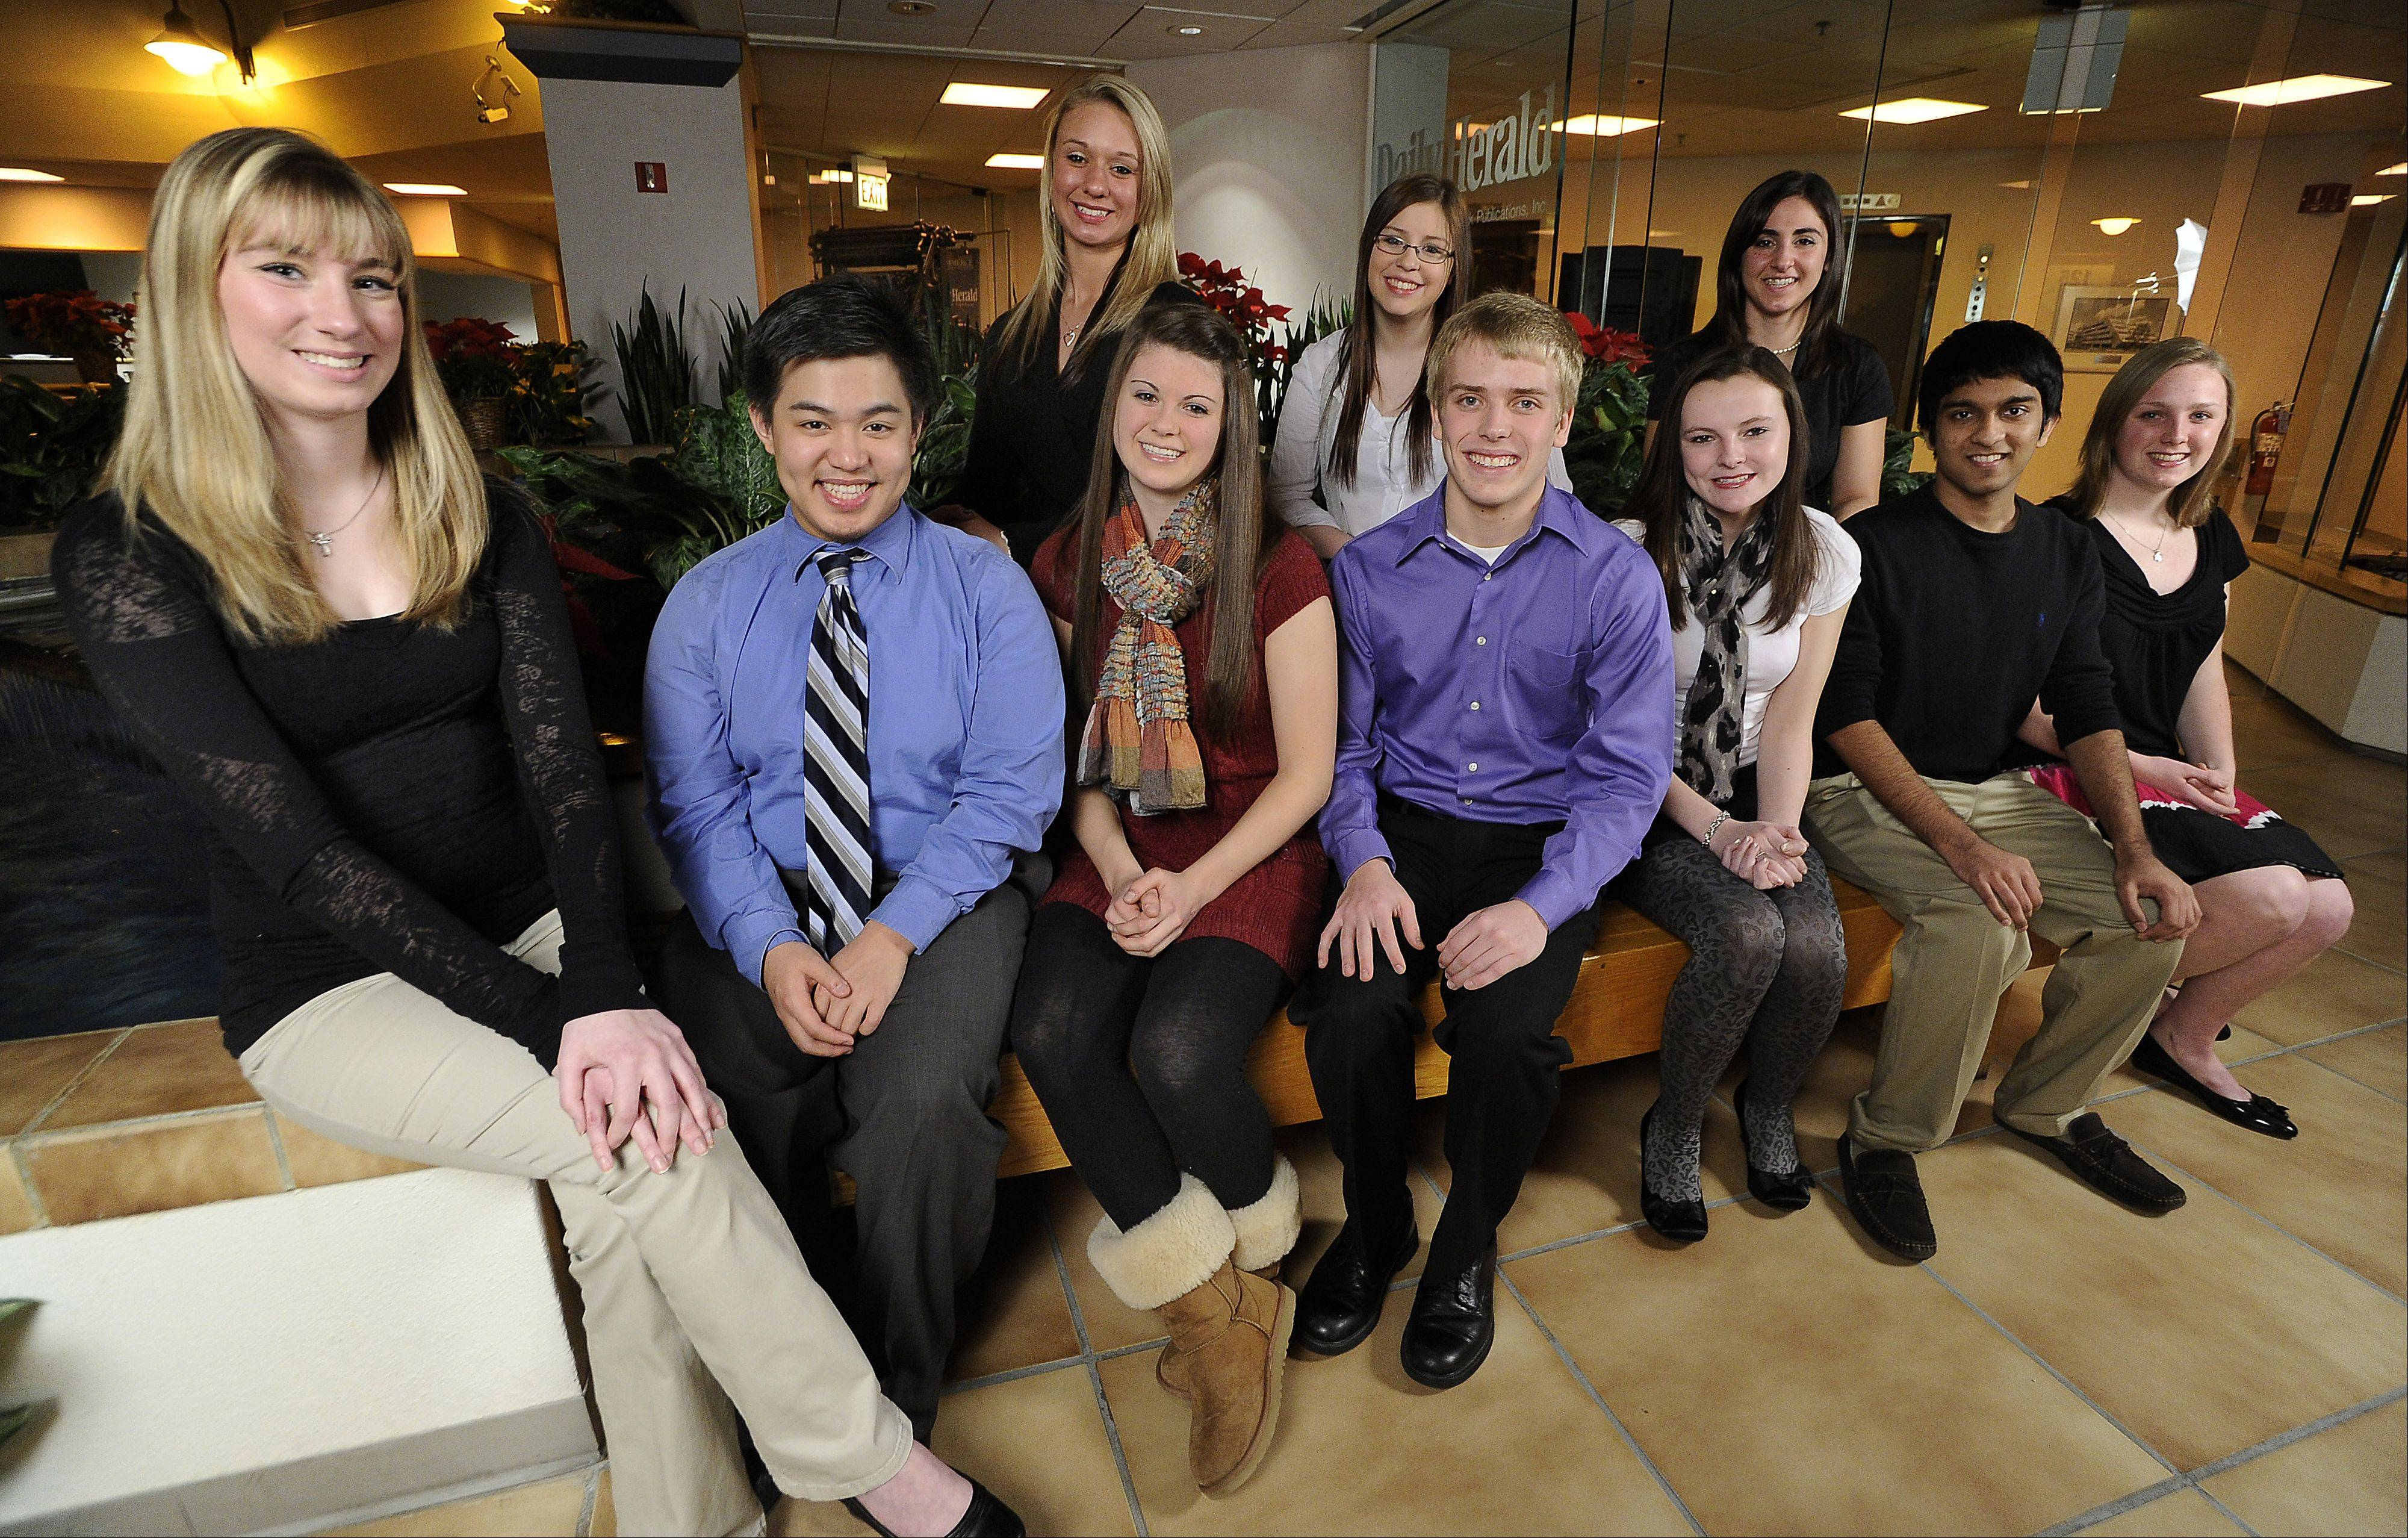 The 2011-12 Northwest Suburban Leadership Team, seated from left: Rachel Hasler, Hoffman Estates High School; Kenneth Gonzales, Bartlett High School; Kristen Akialis, Buffalo Grove High School; Daniel Horstmann, St. Viator High School; Katlin Allen, Palatine High School; Parth Shah, Schaumburg High School and Moriah Mulroe, Hersey High School. Standing, from left: Jennifer Krick, Bartlett High School; Jessica Giambarberee, Prospect High School and Tamar Alexanian, William Fremd High School.